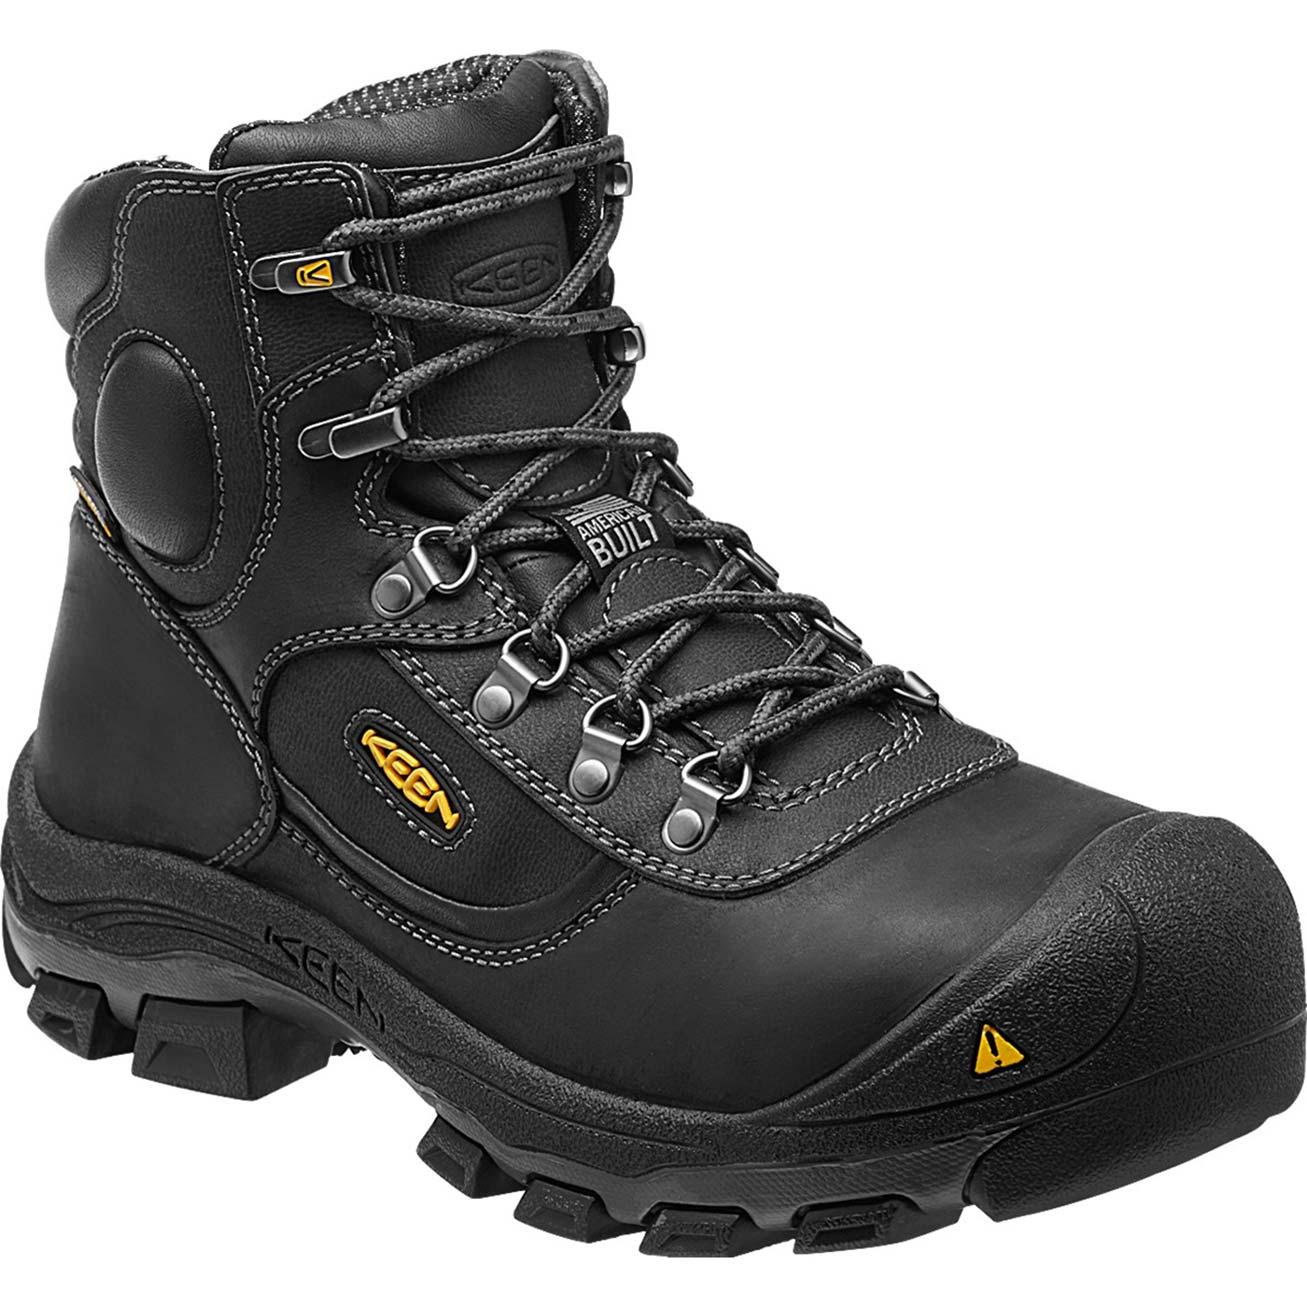 9ca9eaca99c Keen Leavenworth Steel Toe Internal Met Guard Waterproof Work Boot